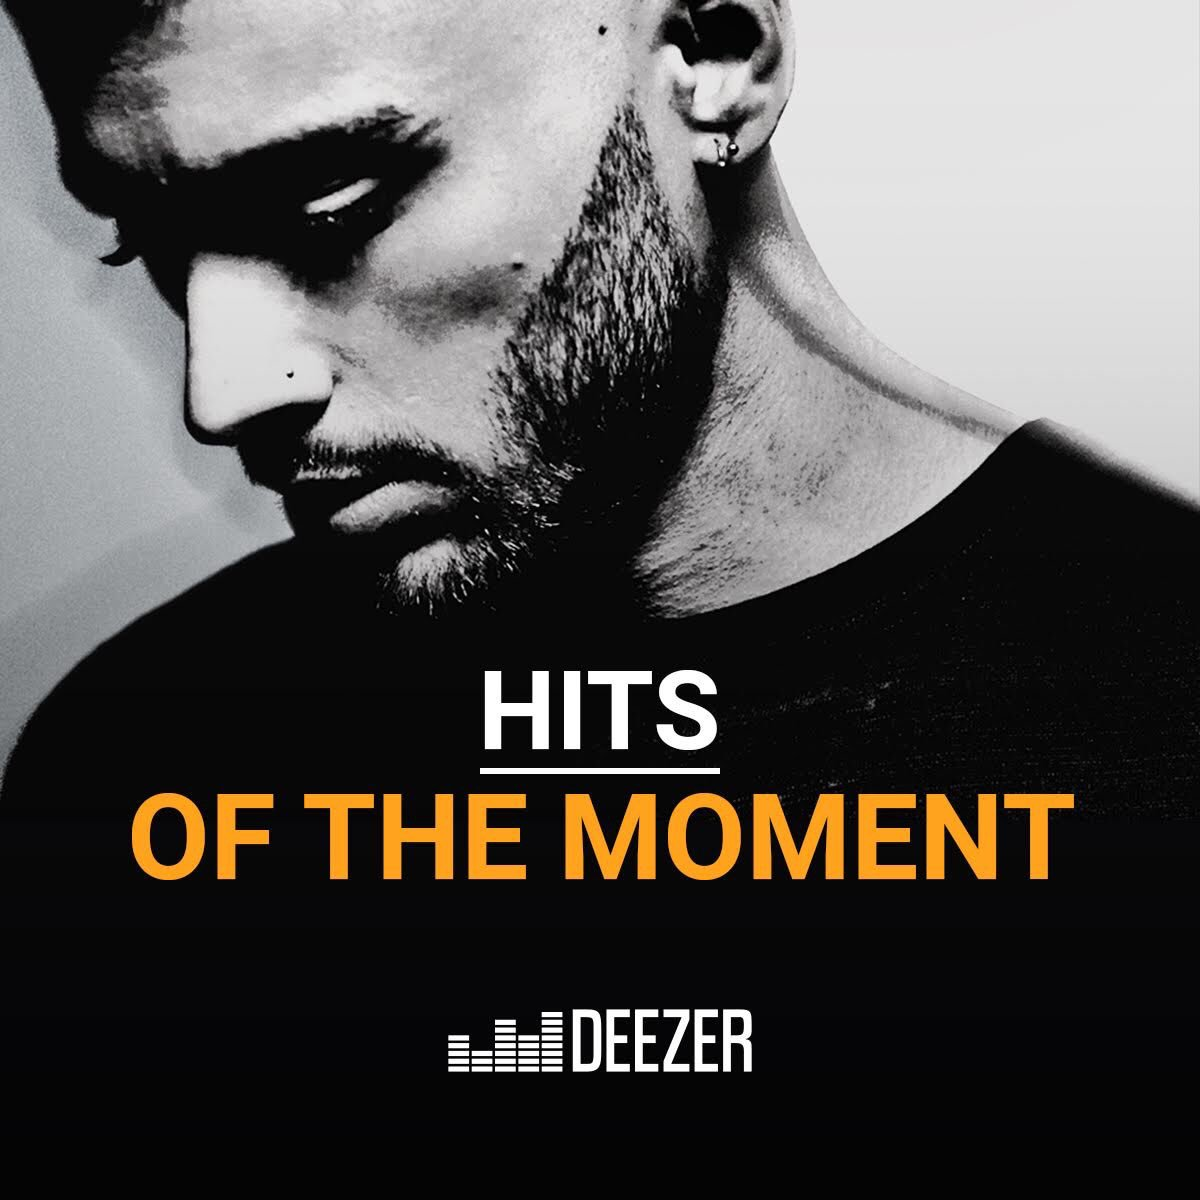 #Update   @zaynmalik&#39;s #StillGotTime is at the top of @Deezer&#39;s Hits of the Moment!  http:// zayn.at/Deezer2017  &nbsp;  <br>http://pic.twitter.com/hjovYlNr74